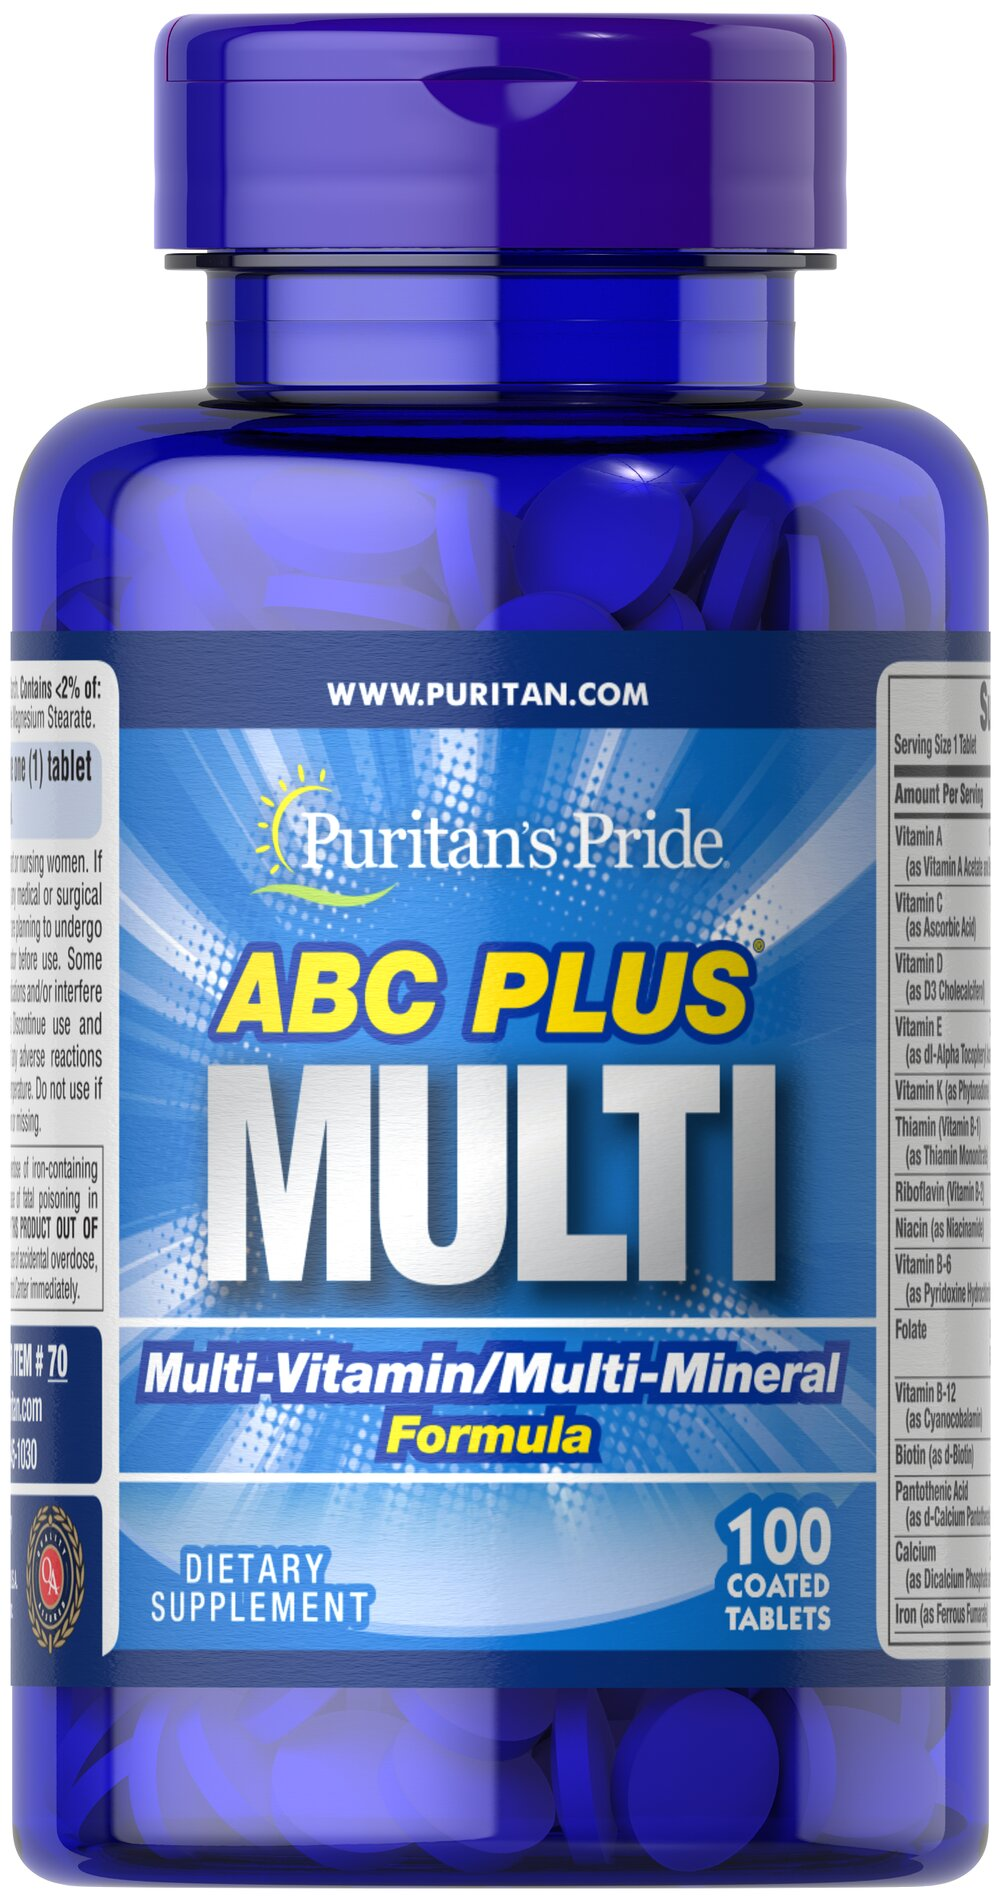 ABC Plus Multivitamin and Multi-Mineral Formula <p>Now getting your daily nutrients is as easy as ABC Plus! This dynamic formula offers a full spectrum of vitamins and minerals for your healthy lifestyle.</p> 100 Caplets  $12.29